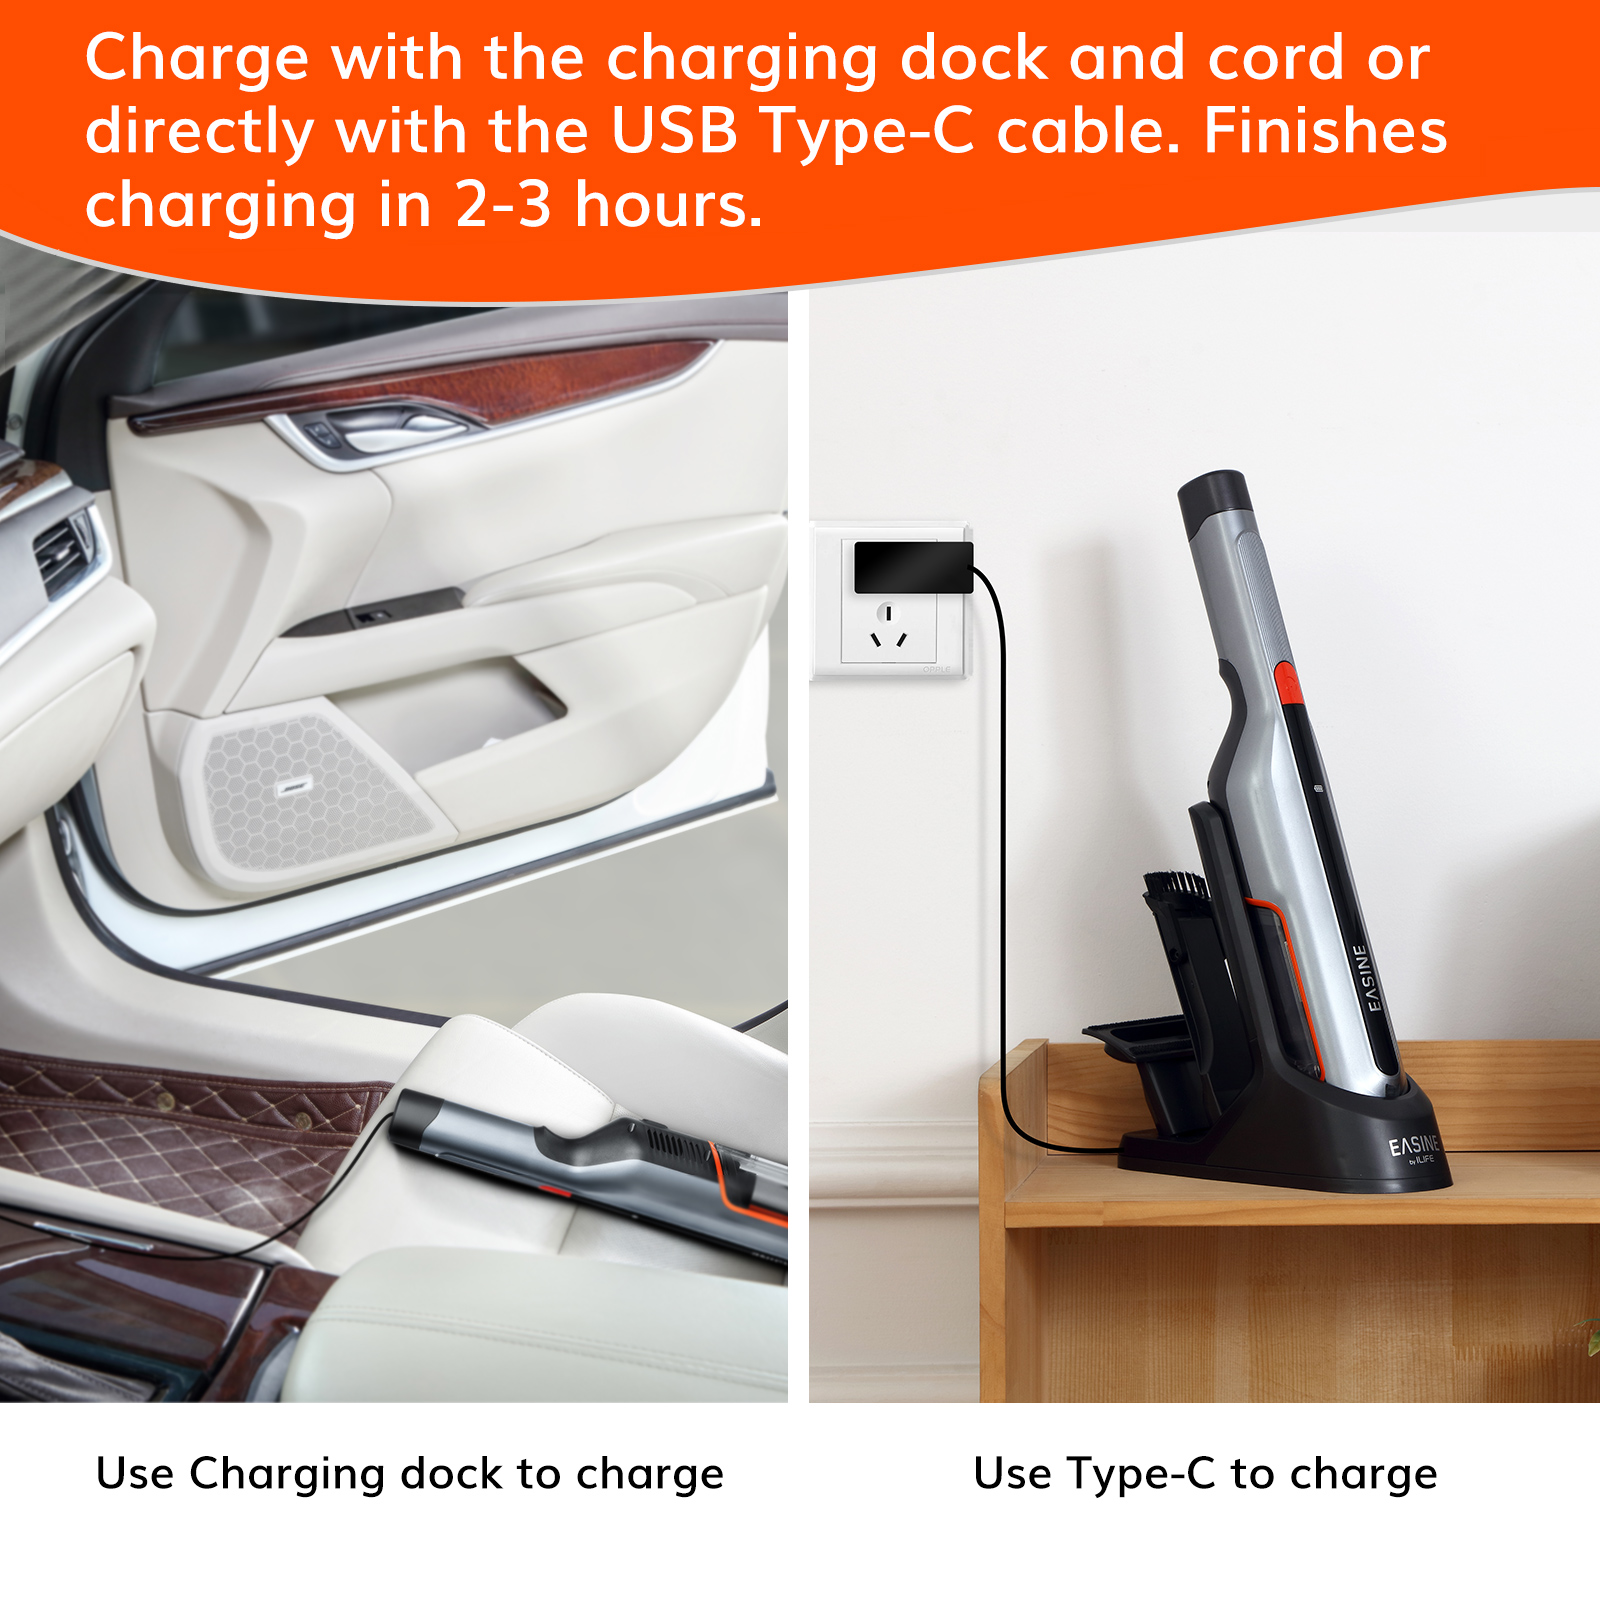 EASINE by ILIFE M50 Handheld Car Vacuum Cleaner – 14,500Pa Powerful Suction,  Type-C & USB Charging, 2 Hours Fast Charge 2